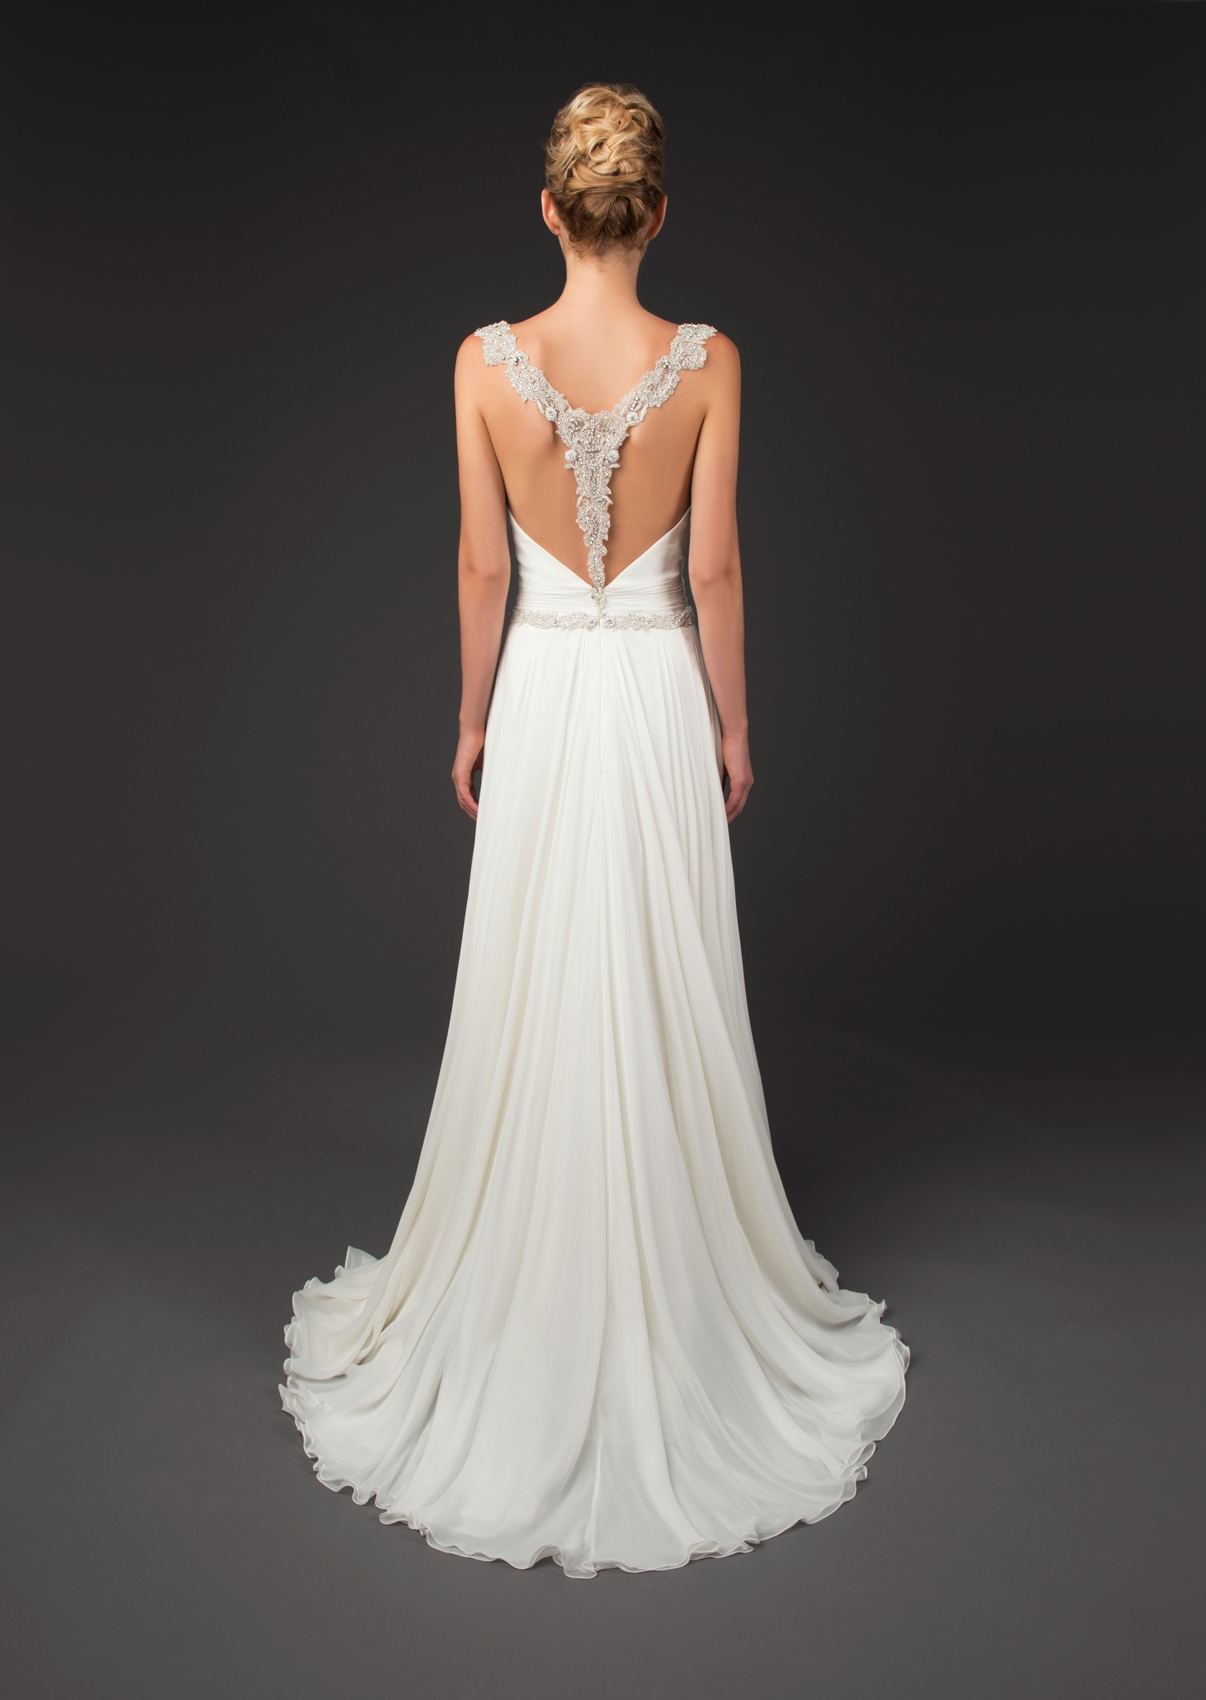 winnie-couture-wedding-dresses-fall-2014-diamond-label-collection-34-01202014